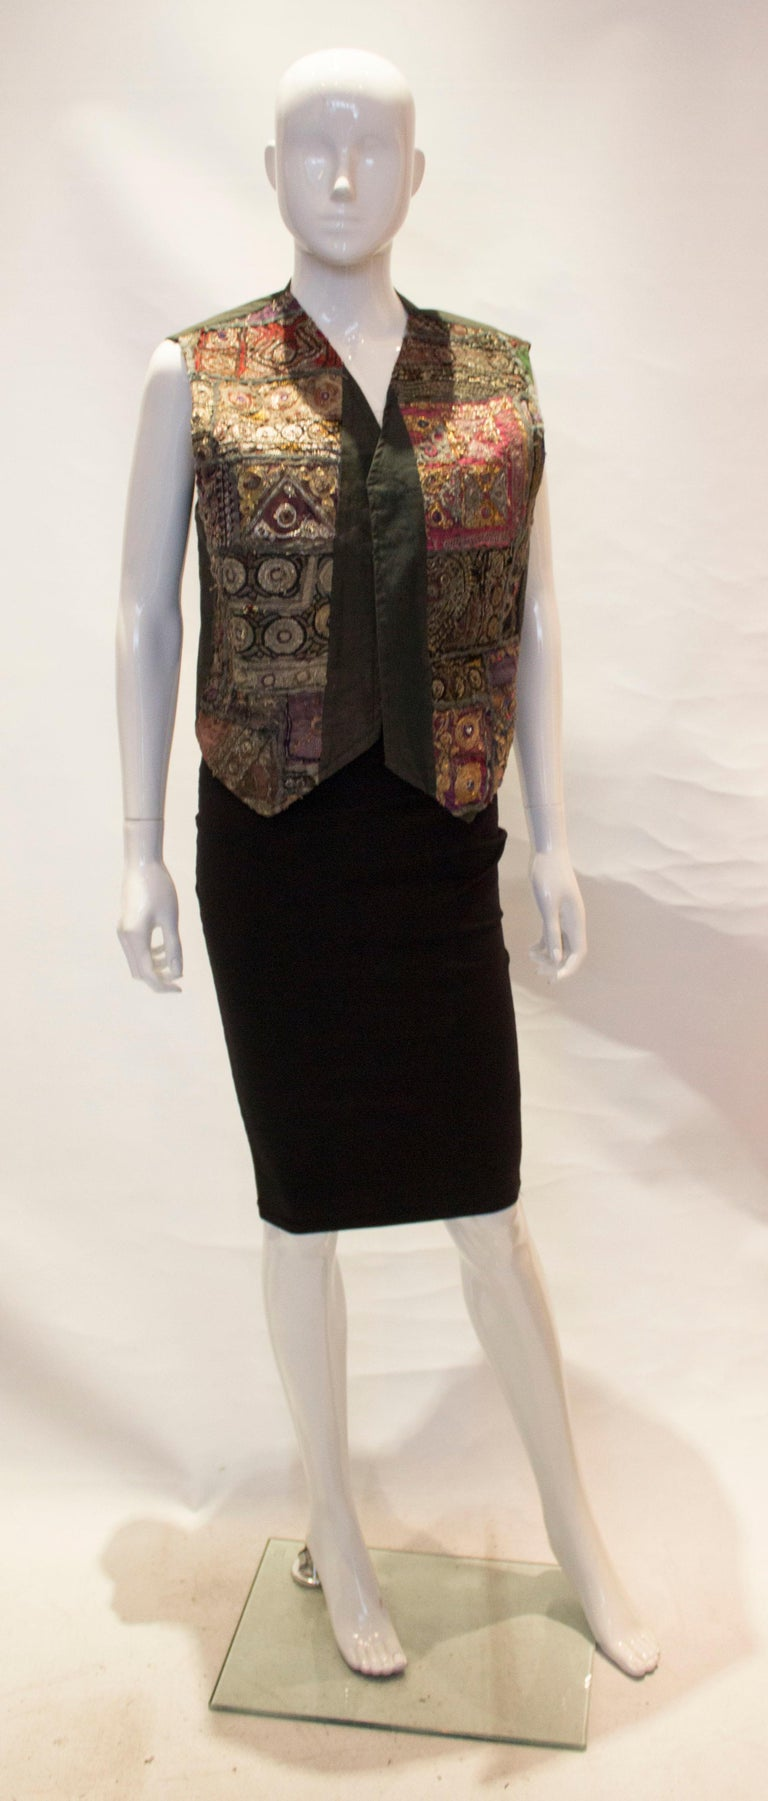 A fun and east to wear vintage Indian waistcoat. The fabric is a grey cotton with decoration on the front.